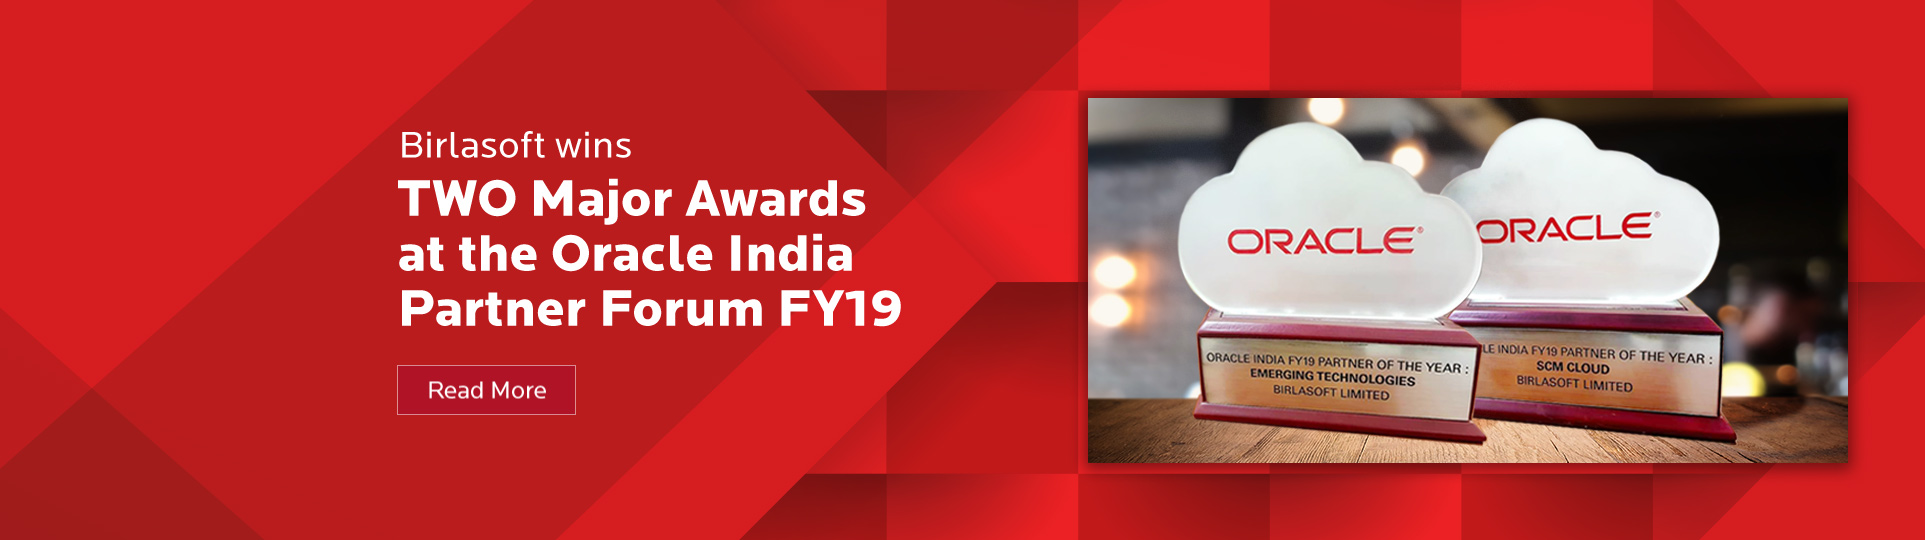 Birlasoft wins two major awards at the Oracle India Partner Forum FY19